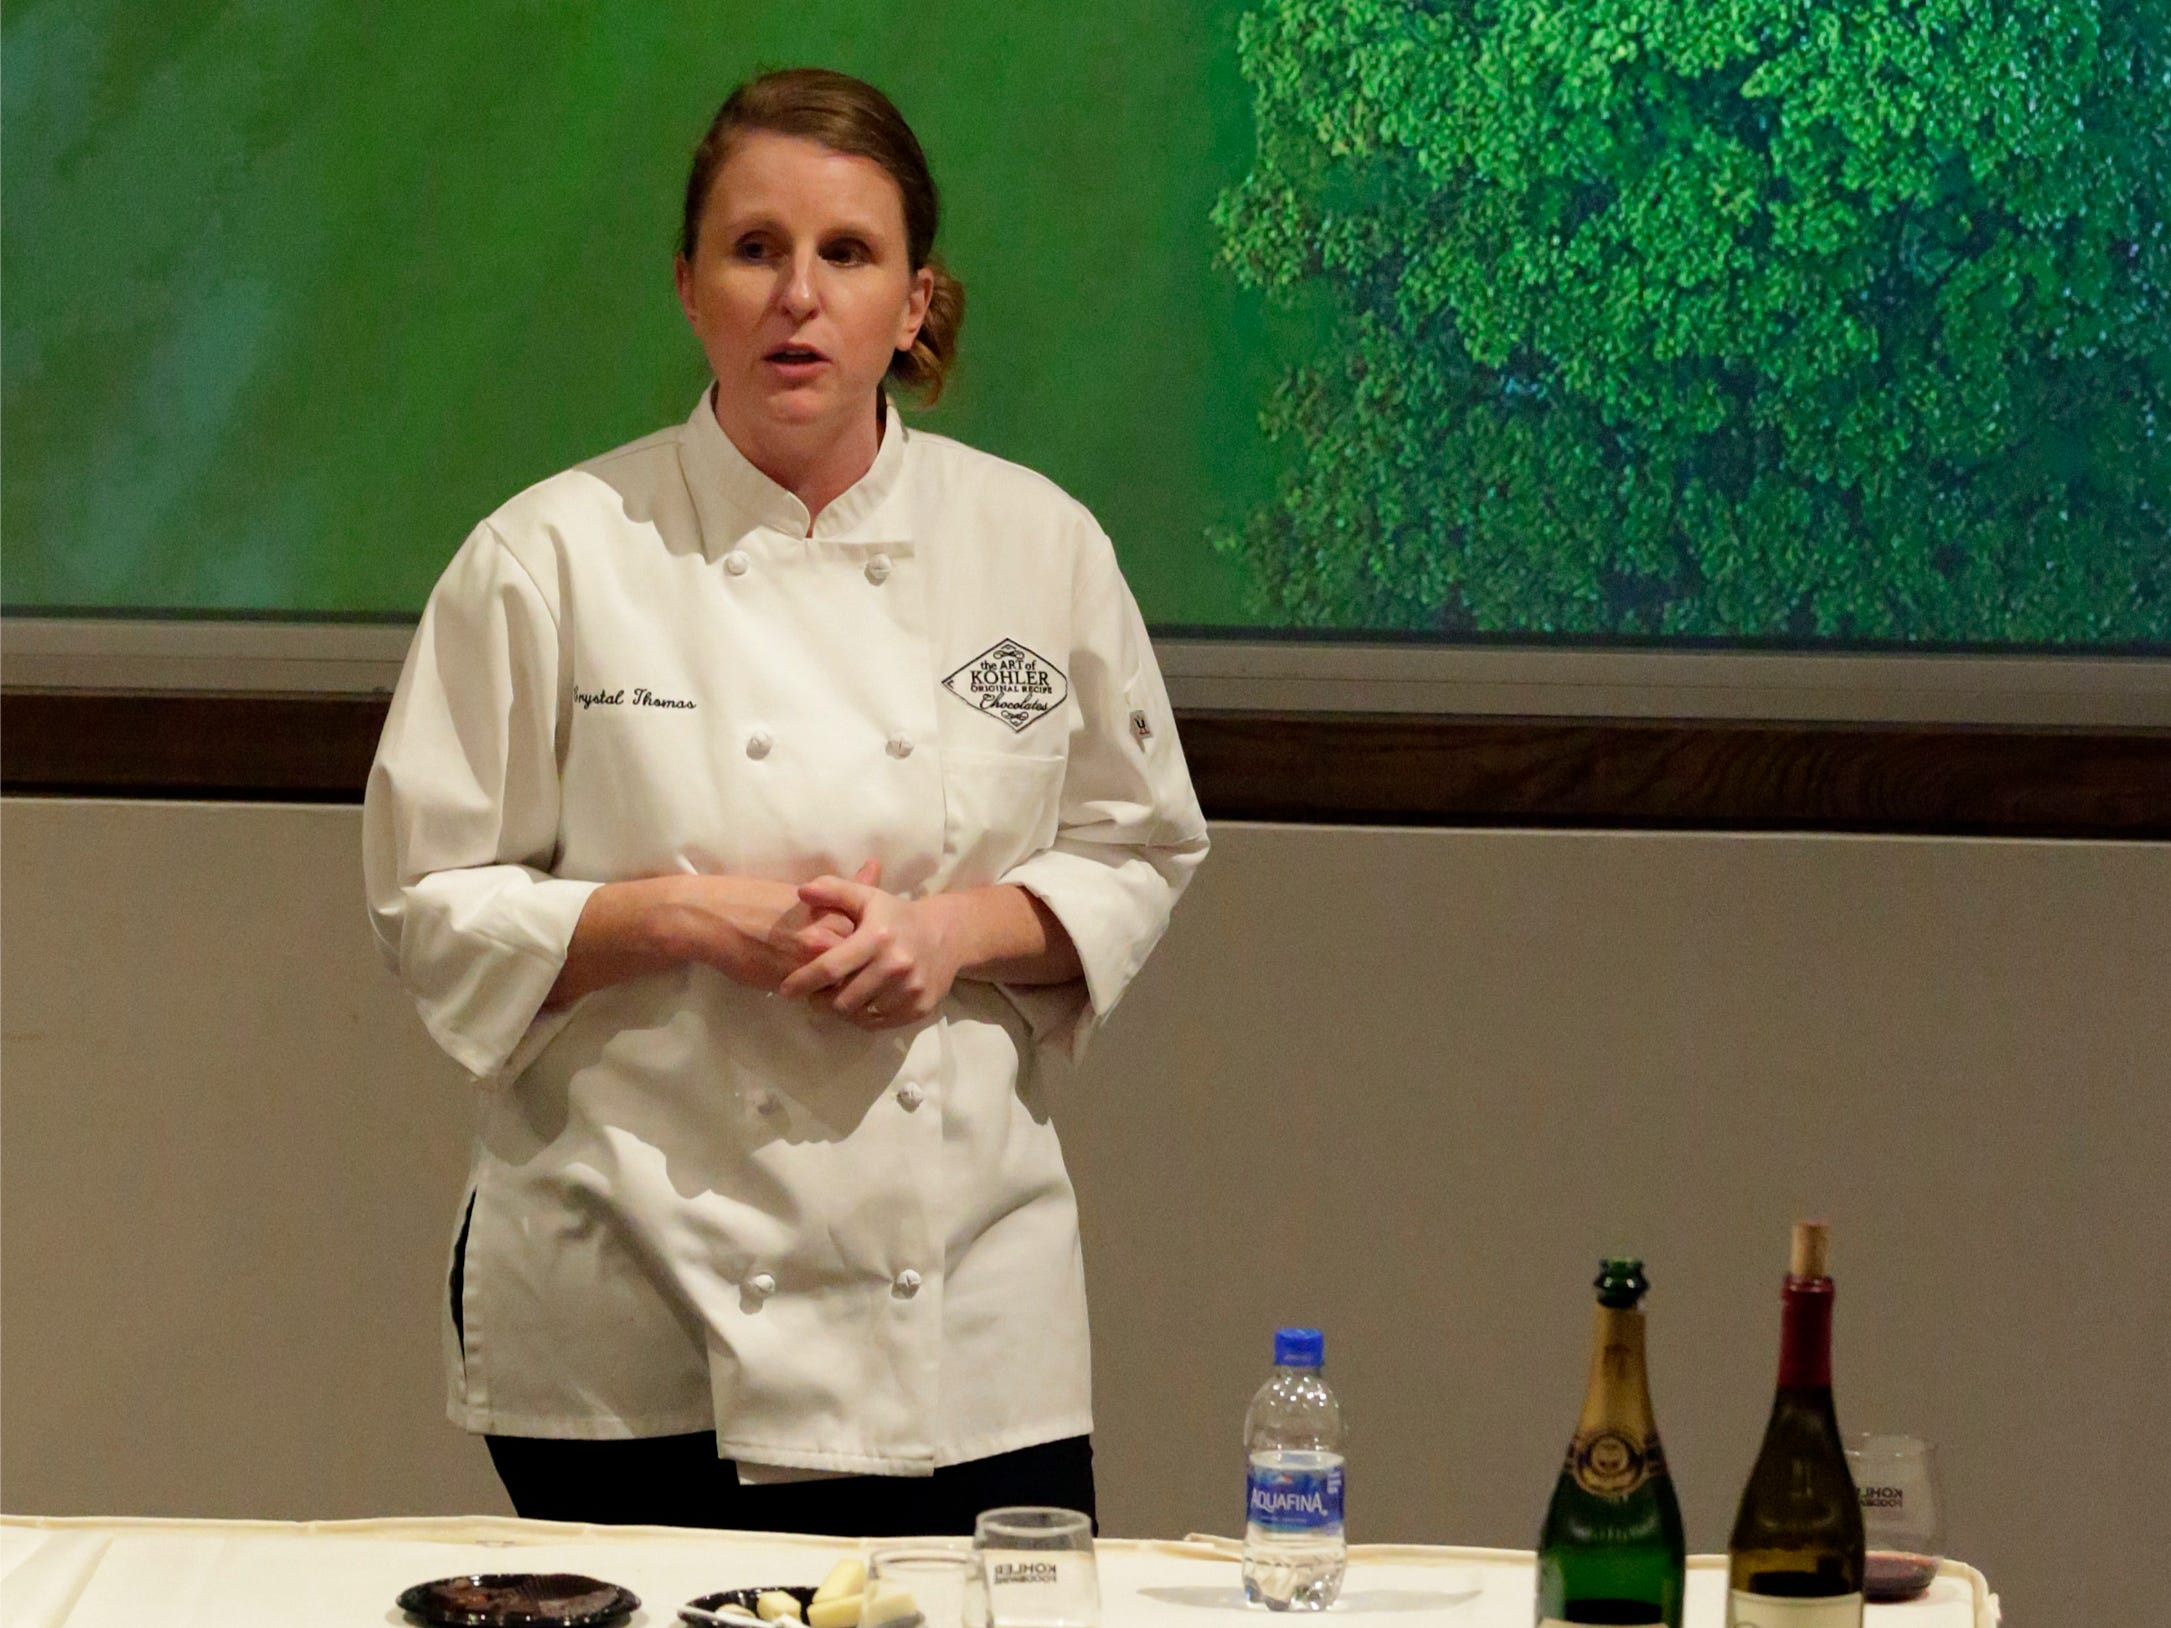 Kohler Chocolatier Crystal Thomas explains some of the nuances of chocolate, wine and cheese during a presentation at Kohler Food and Wine, Friday, October 19, 2018, in Kohler, Wis.